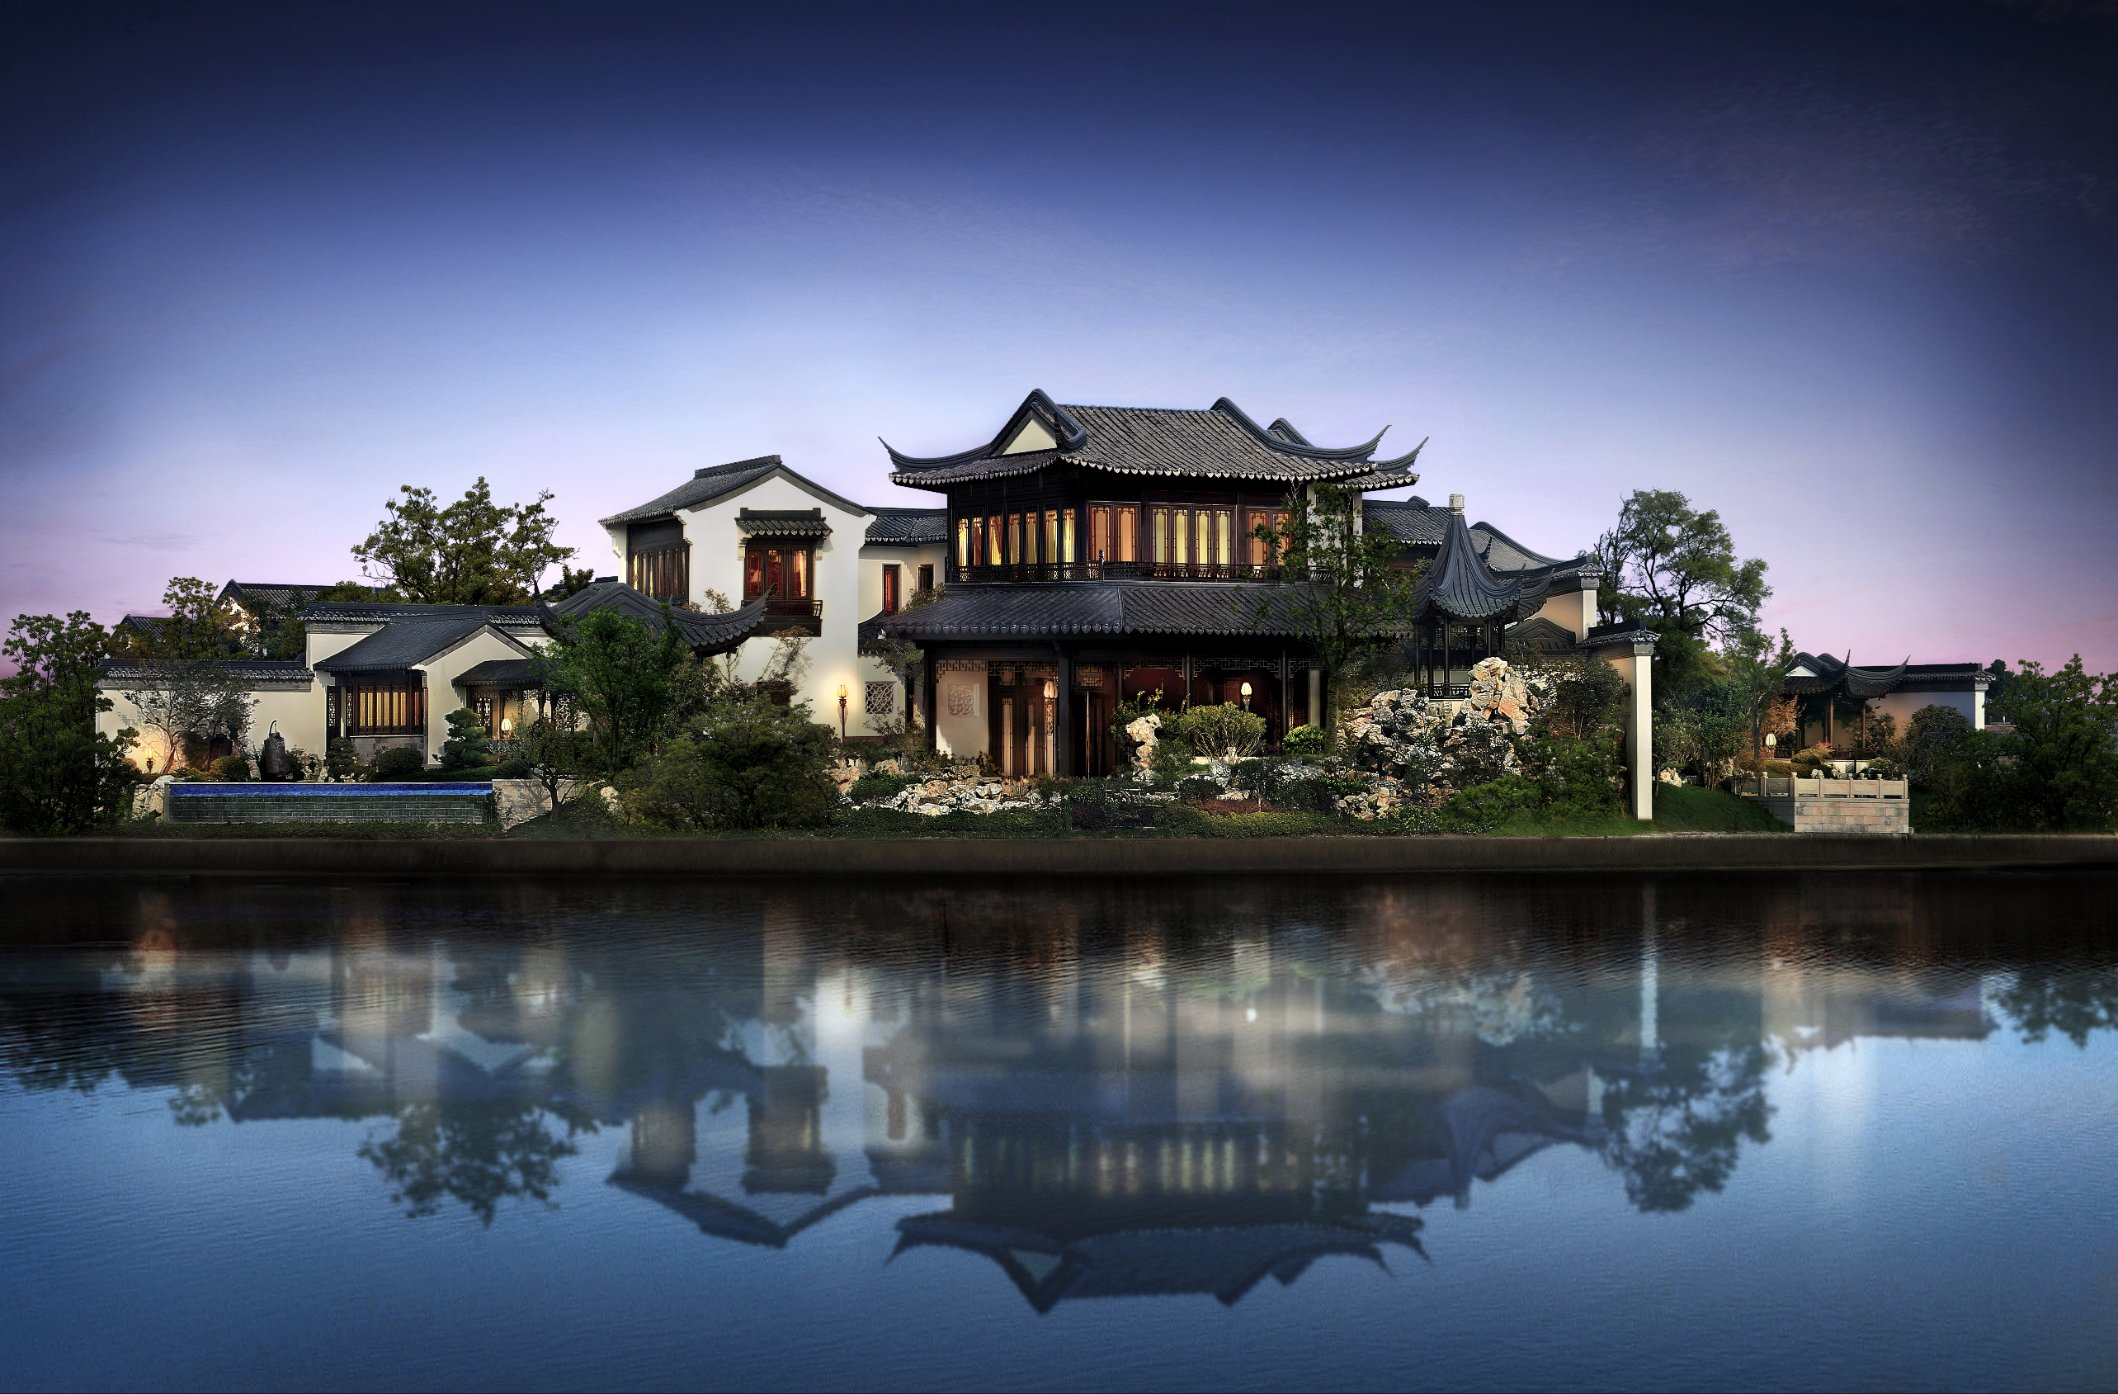 Why Chinas Super Wealthy Shun Western Looking Homes